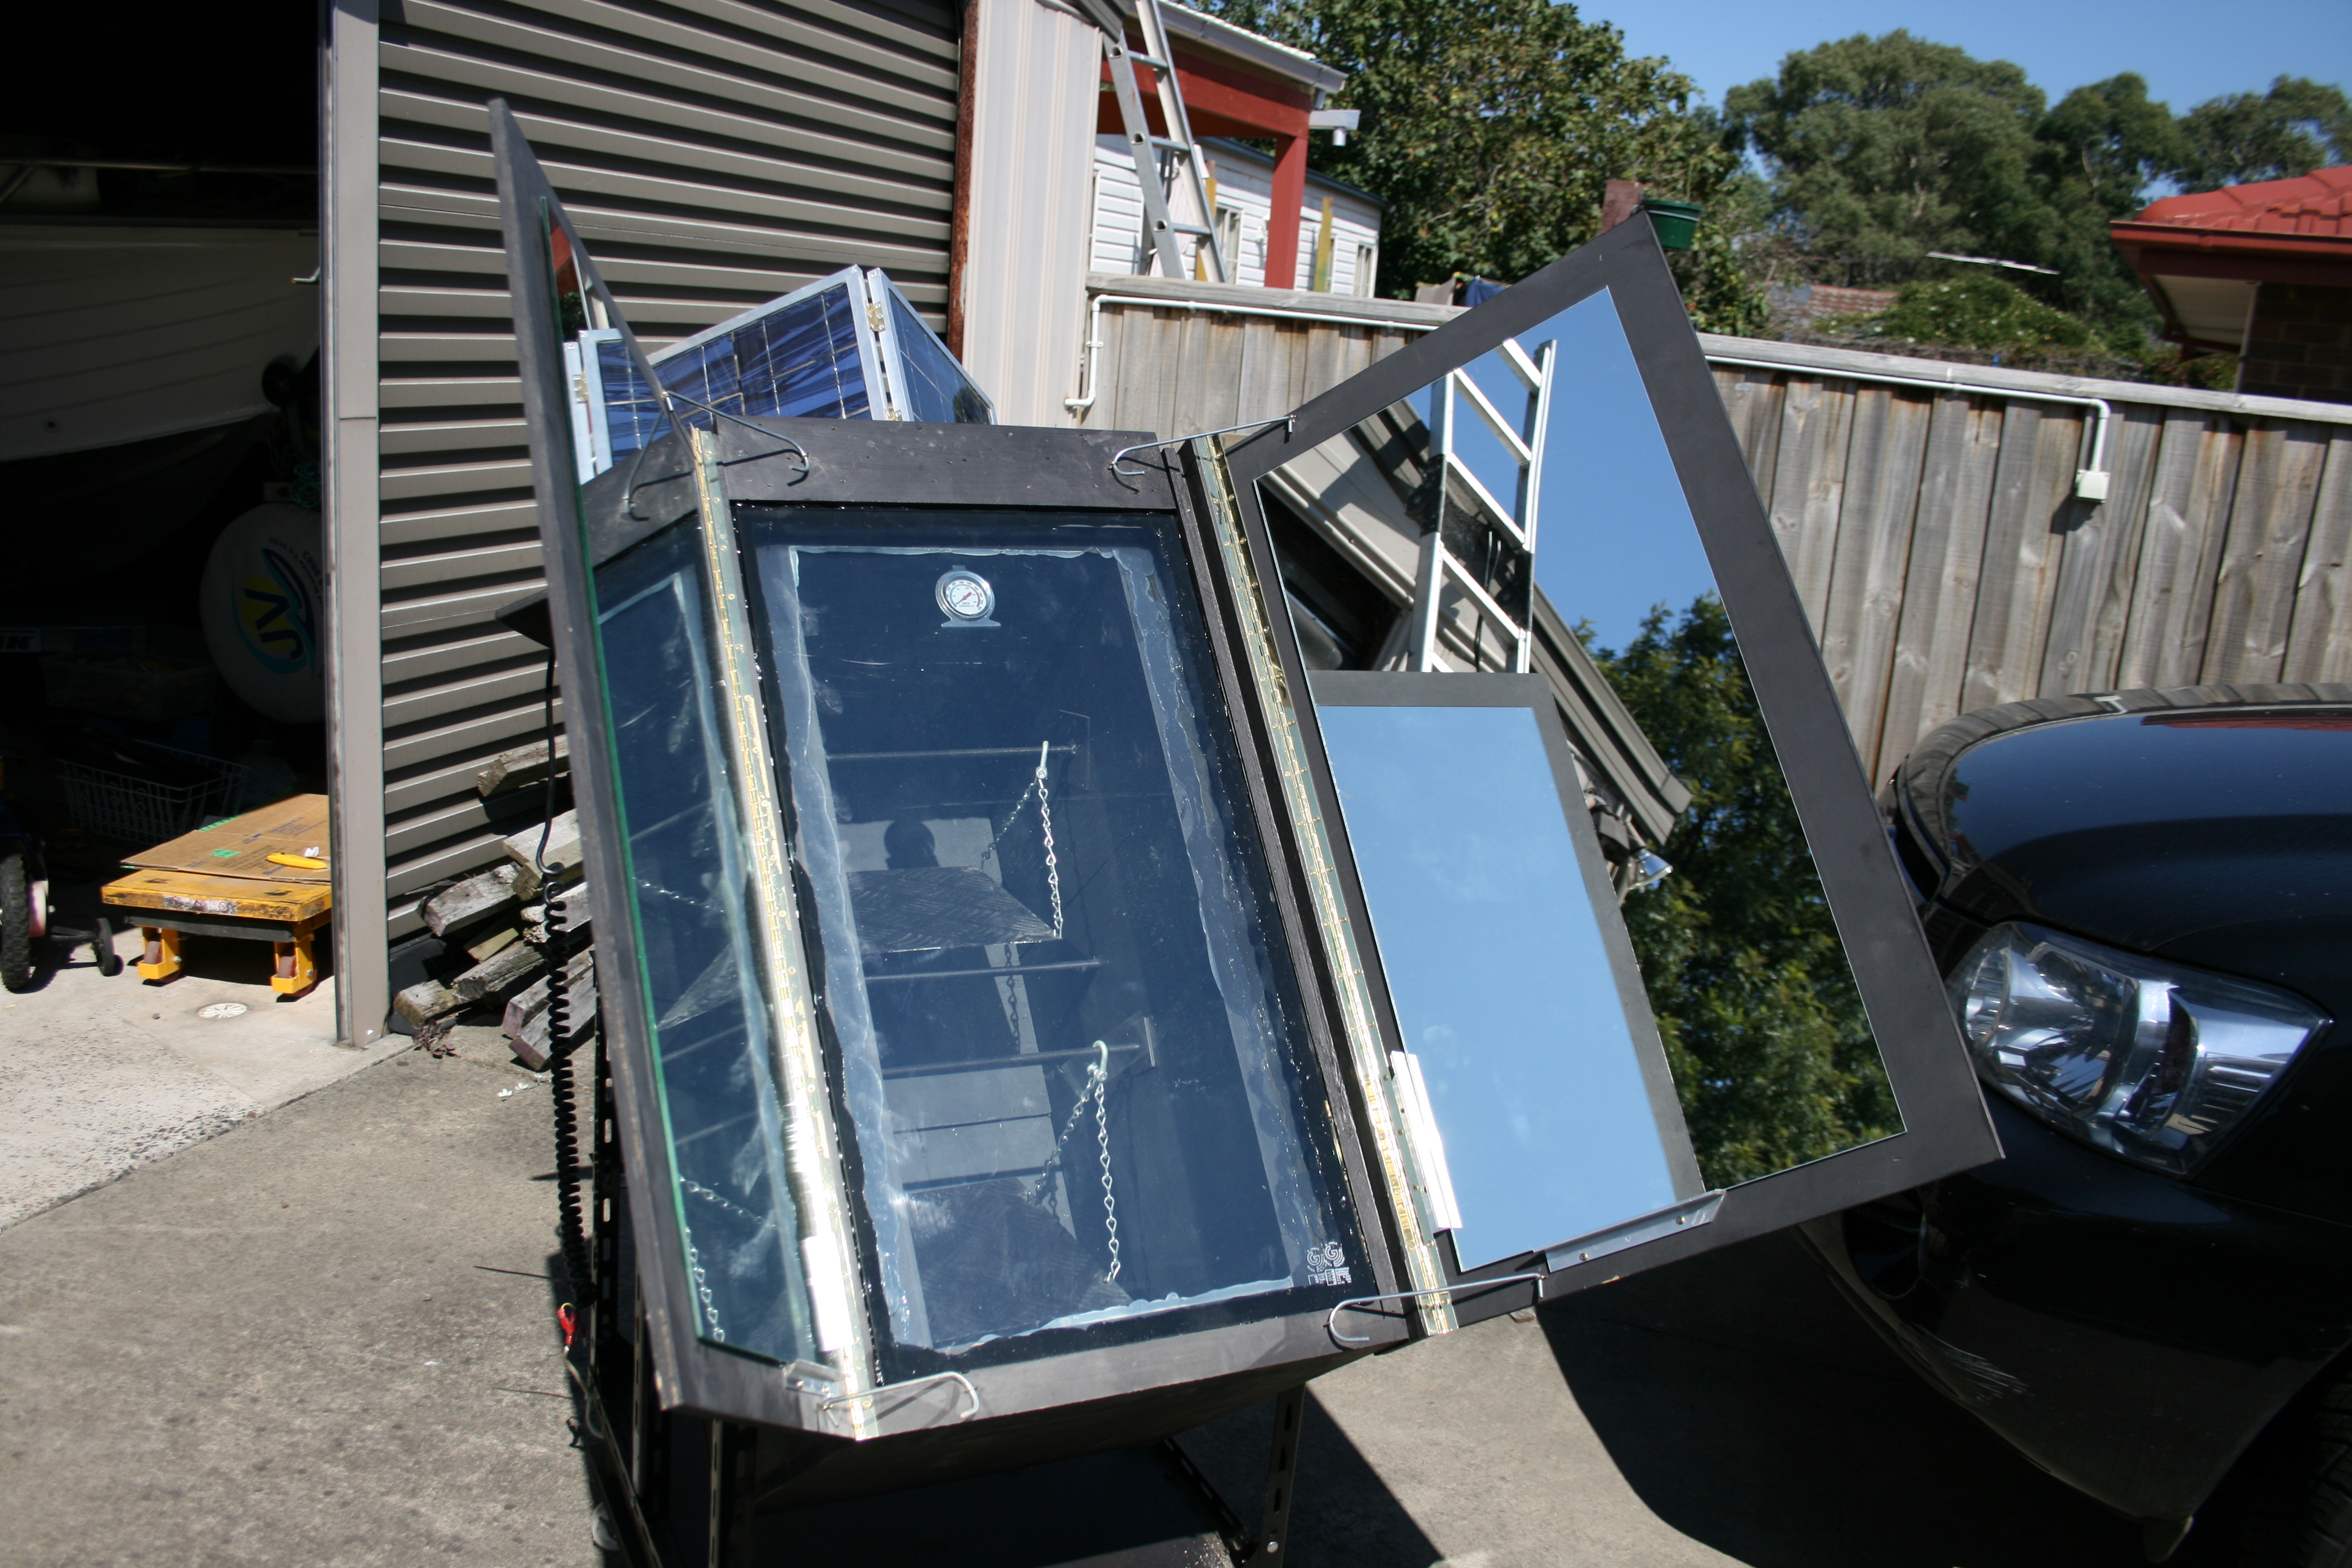 Solar Oven With Tracking...